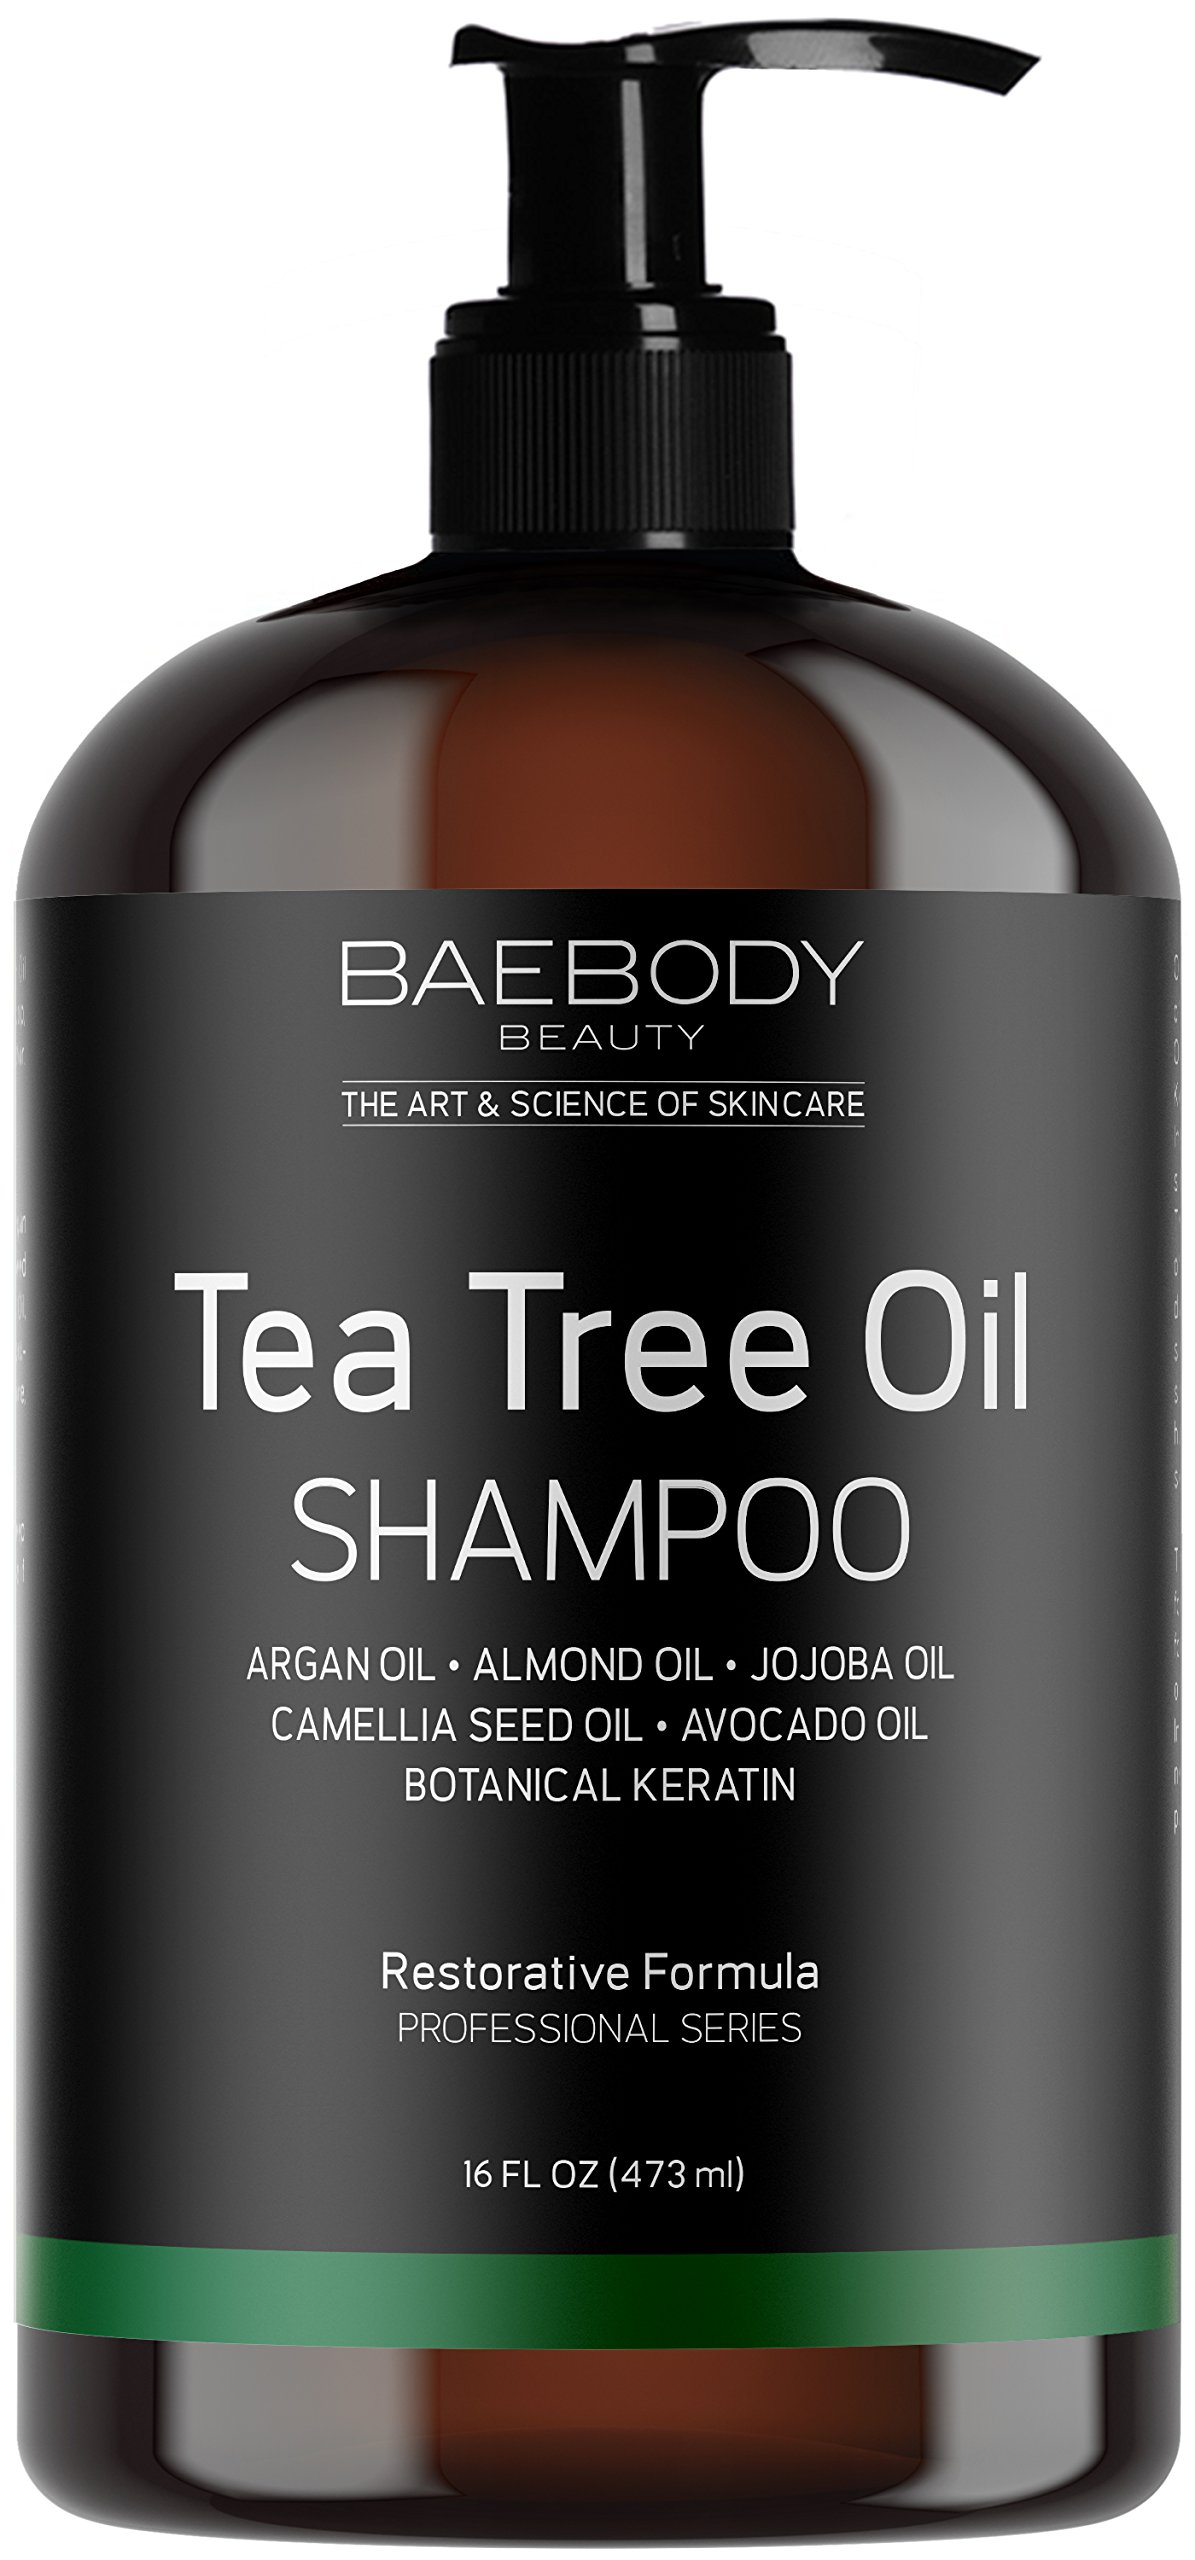 Baebody Tea Tree Oil Shampoo - Helps Fight Dandruff, Dry Hair and Itchy Scalp. For Men and Women. 16 fl oz. by Baebody